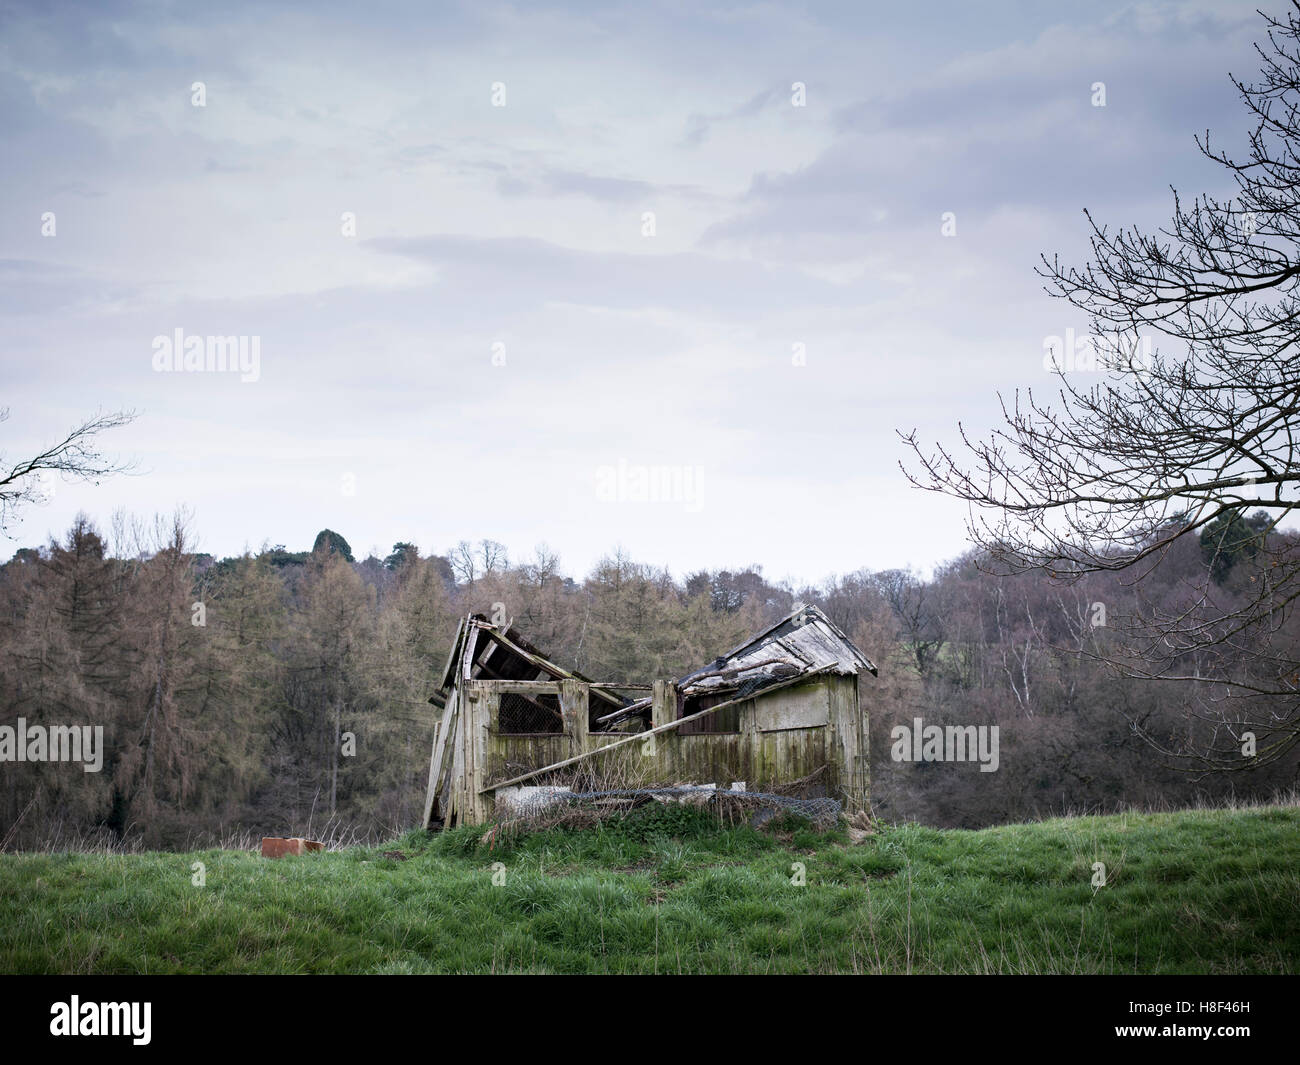 an old derelict fallen down shed in the countryside Stock Photo